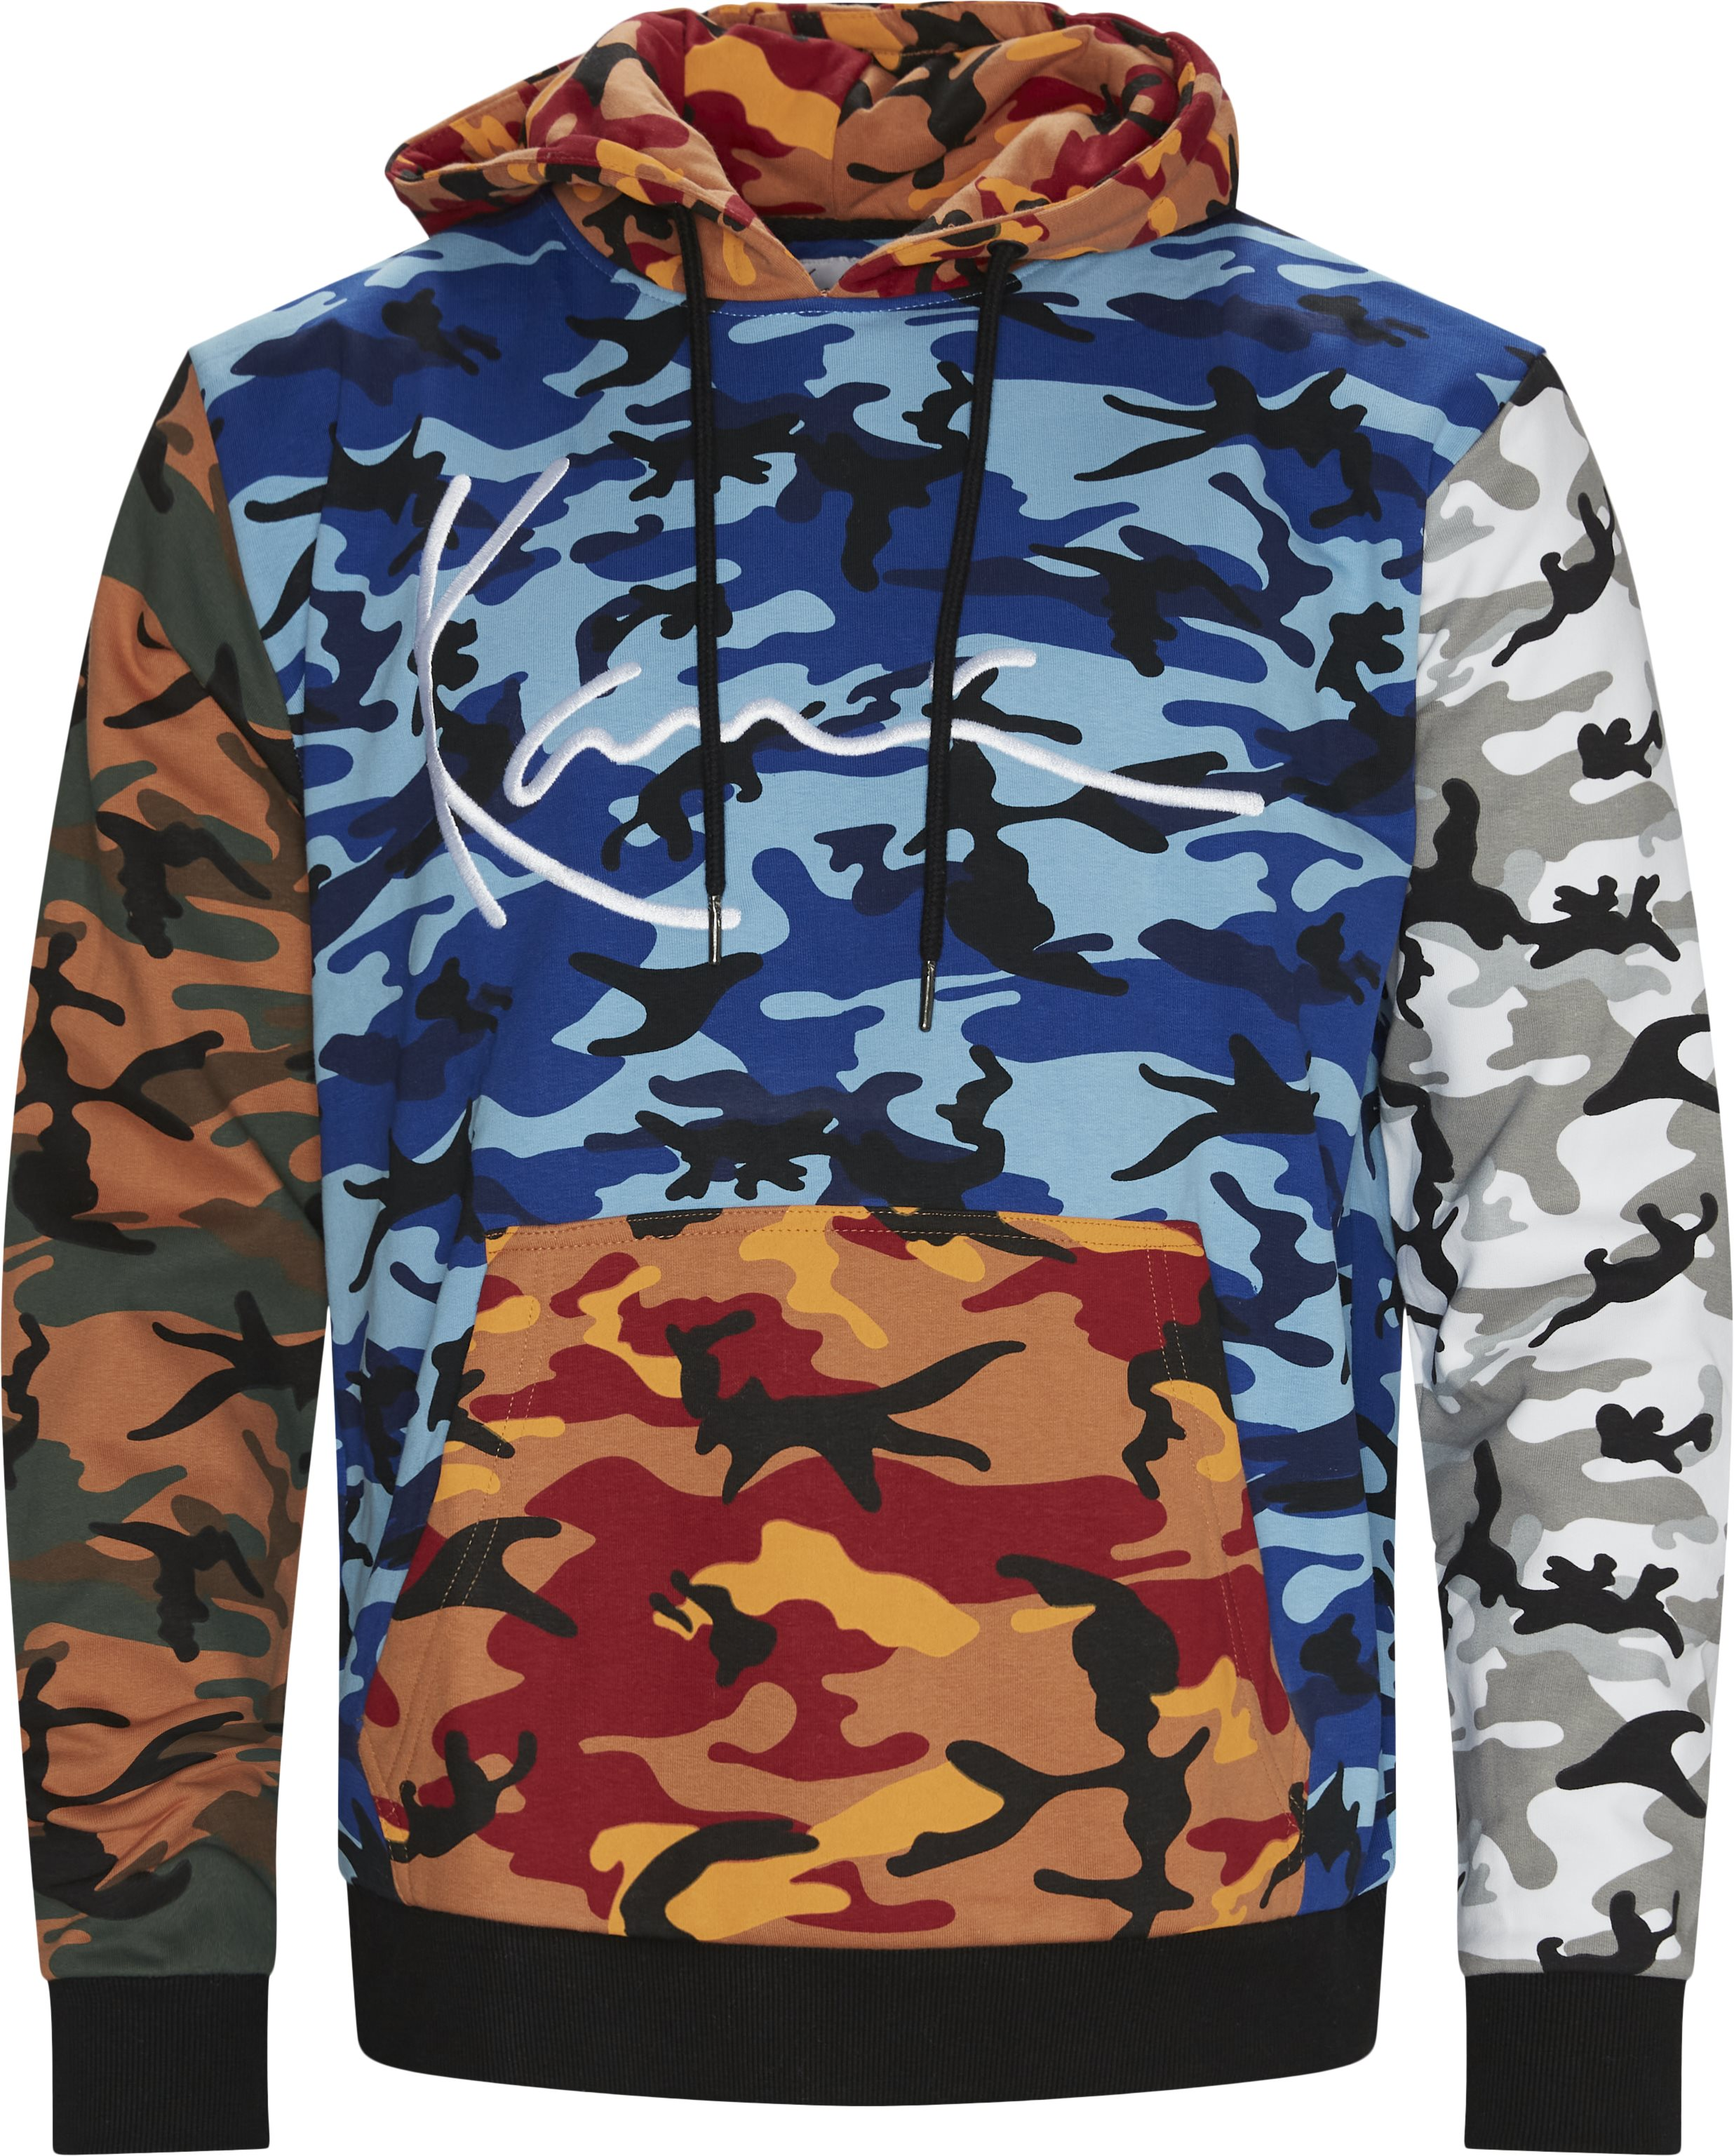 Signature Block Camo Hoodie - Sweatshirts - Regular - Svart